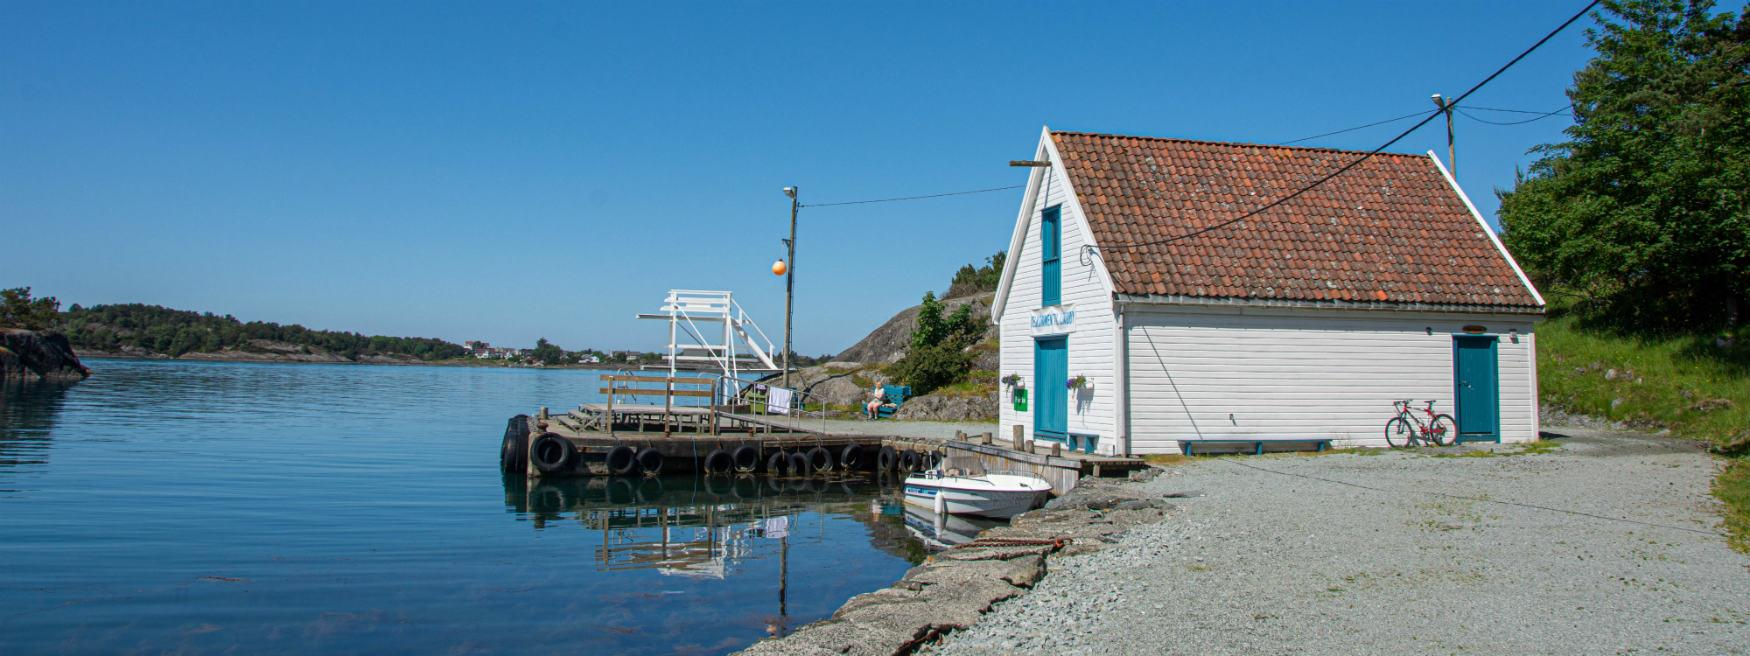 Travel like the locals to hidden gems such as Lindøy